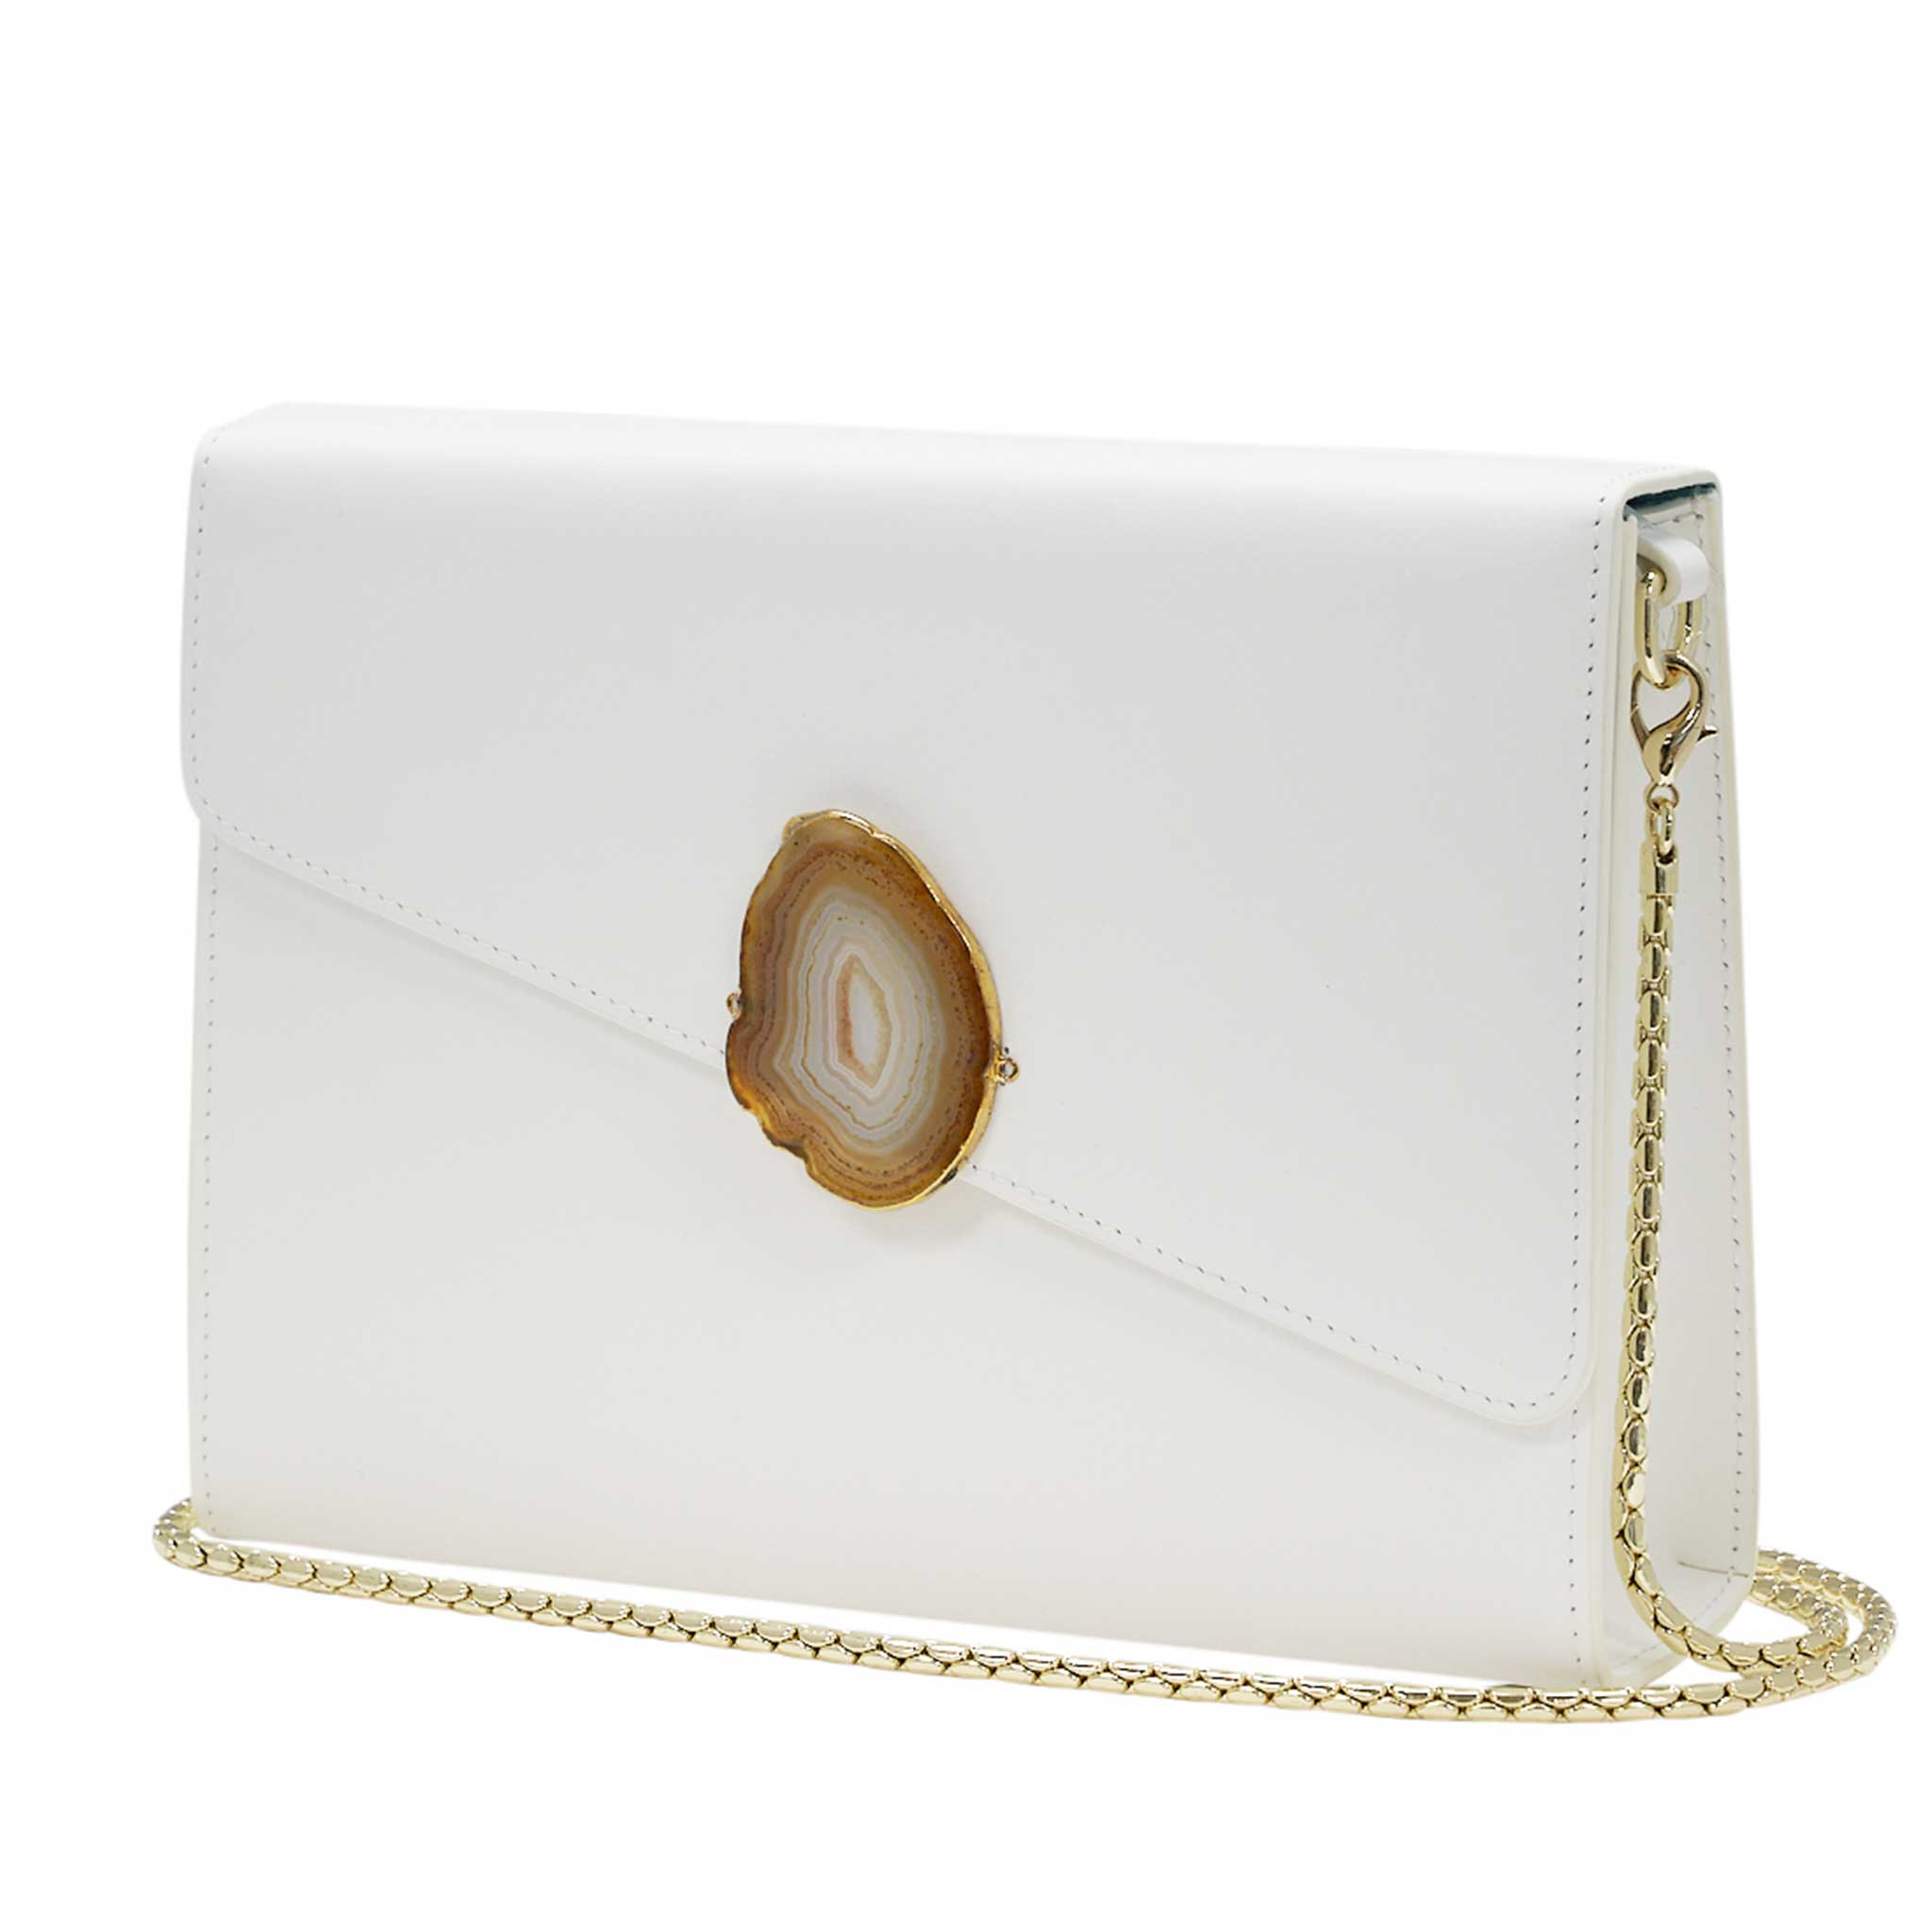 LOVED BAG - MOONSTONE WHITE LEATHER WITH YELLOW AGATE - 1.03.001.046